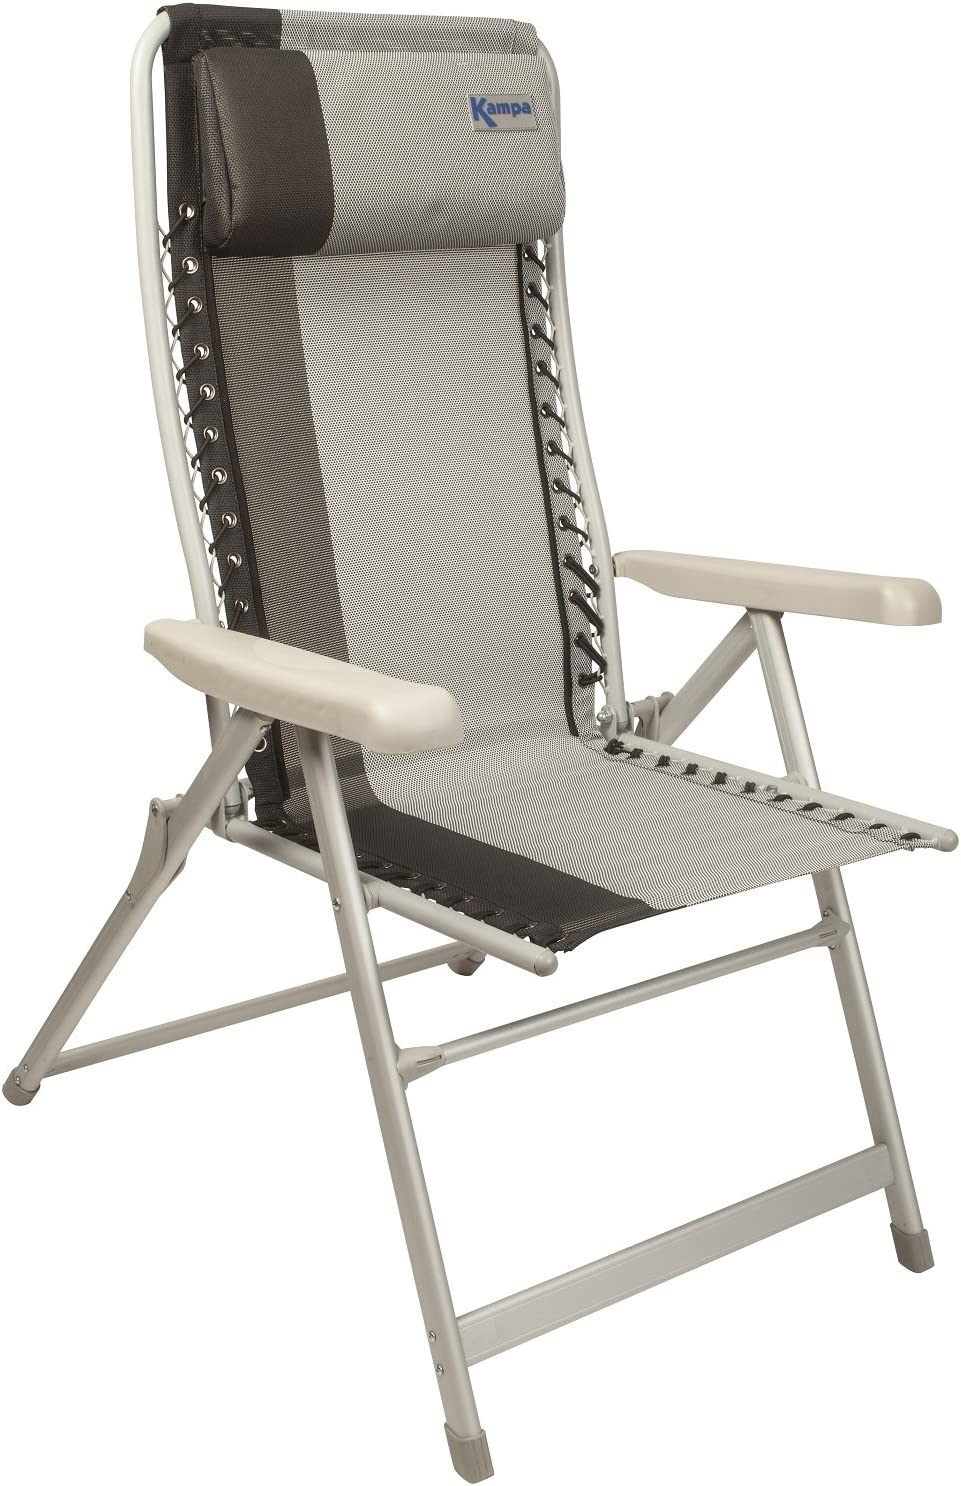 Kampa Lounger Hi-Back Reclining Chair